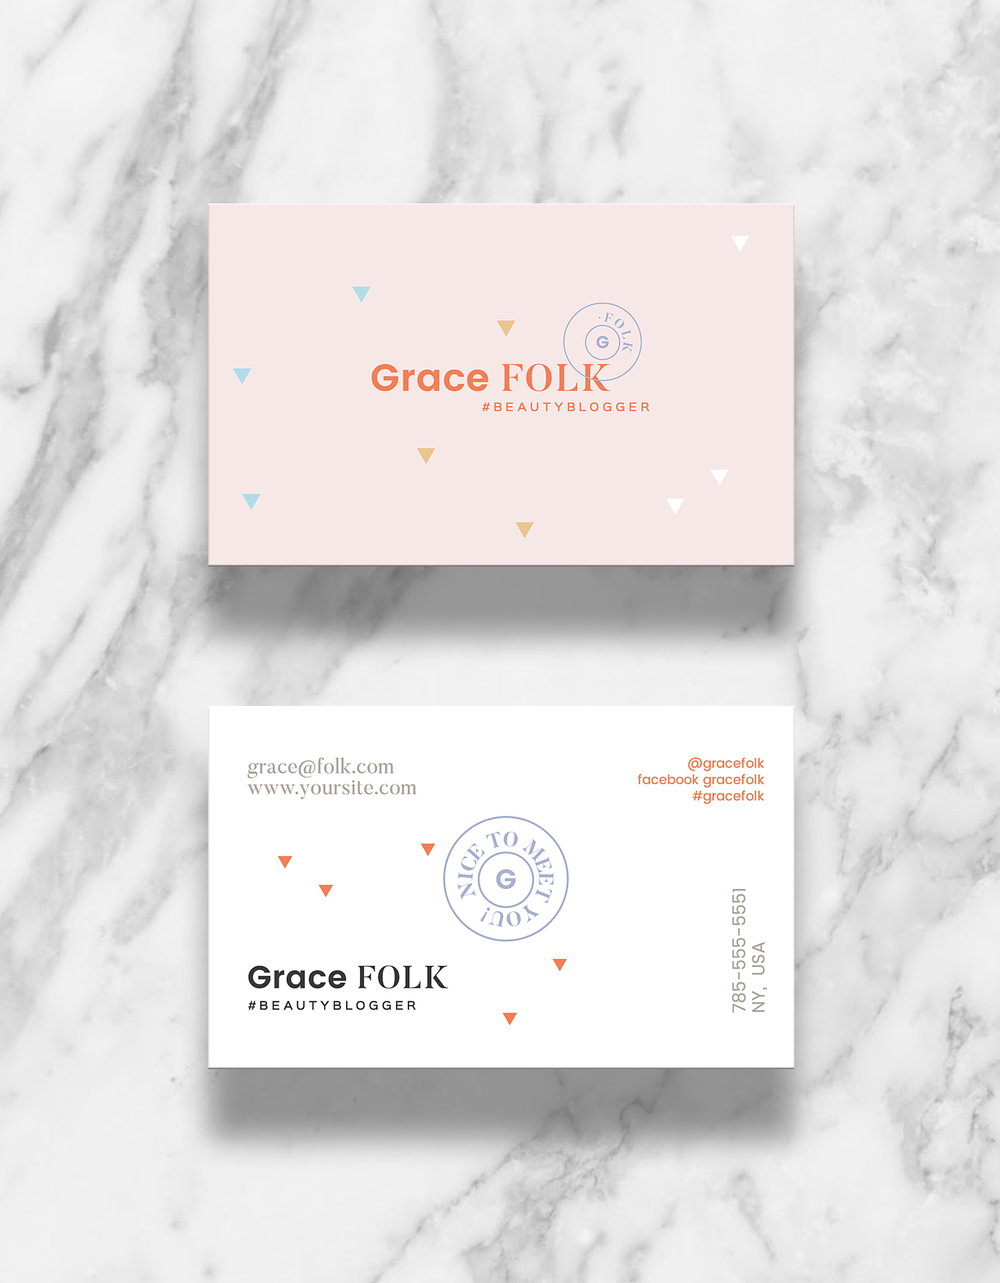 Grace minibrand branding blogging digital design boutique mini branding for bloggers grace folk starter kit everything you need to start a reheart Choice Image